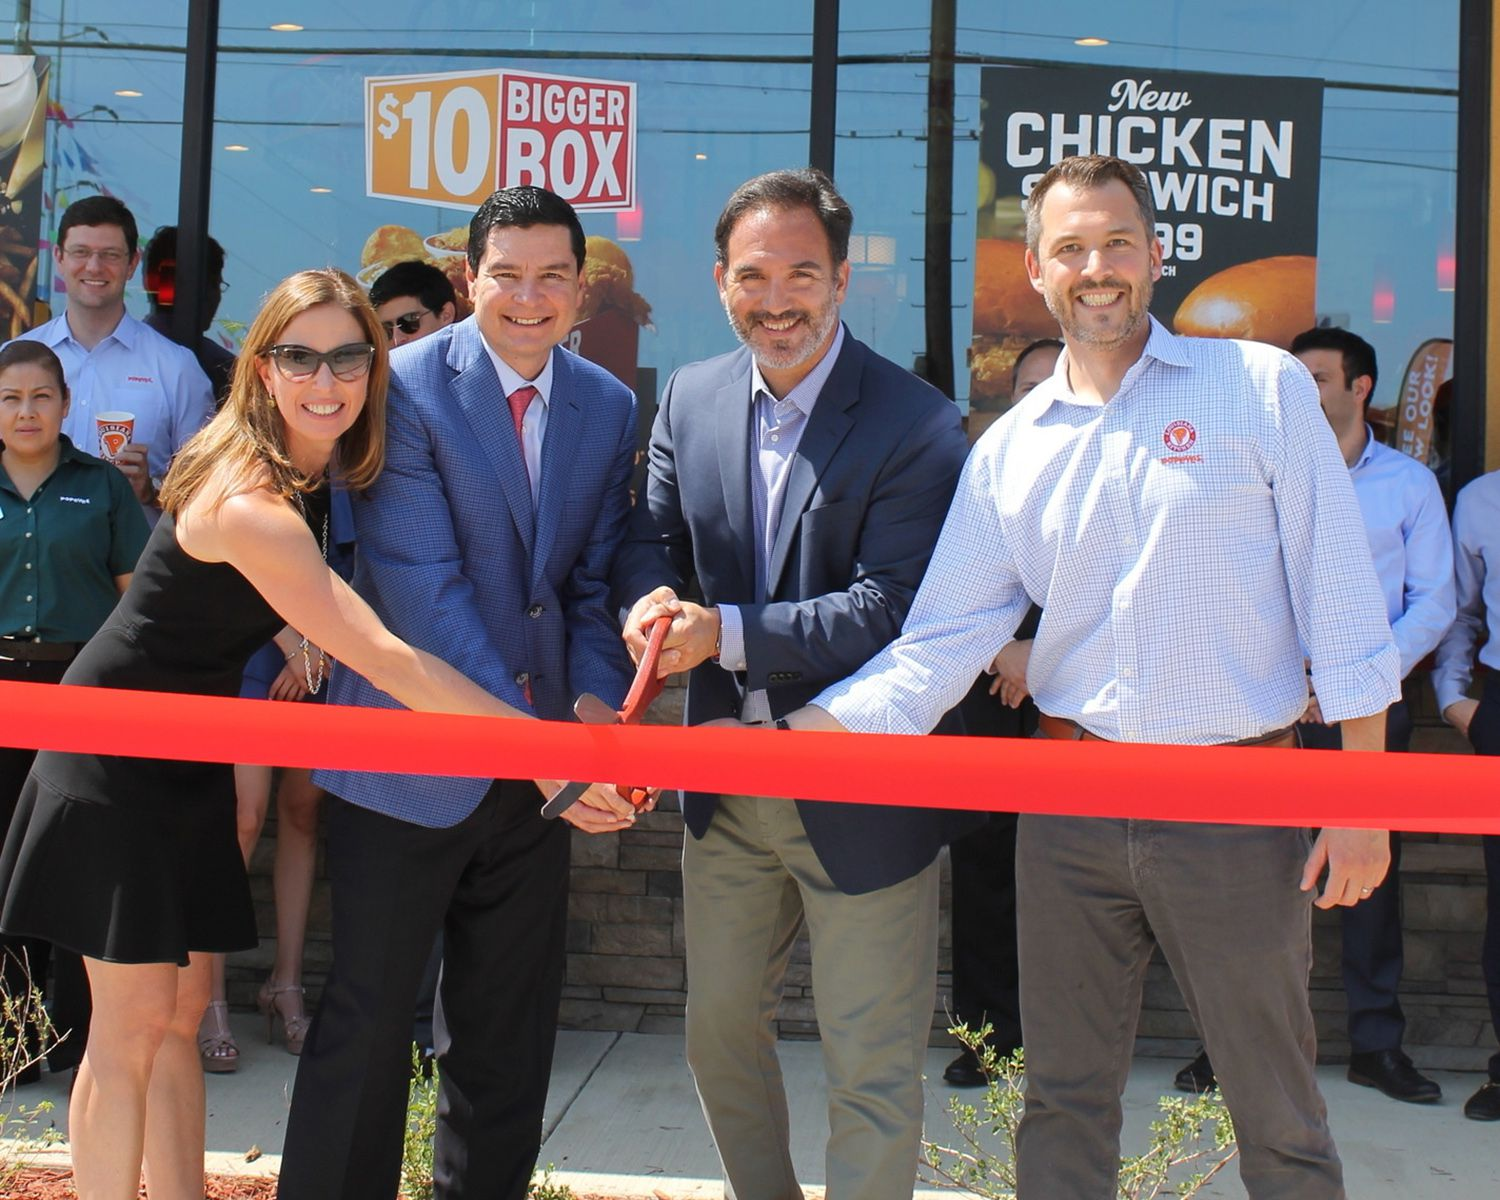 From left: Adriana Perales, Sun Holdings CEO Guillermo Perales, CEO of Restaurant Brands International Jose Cil, and President of Popeyes Felipe Athayde cut the celebratory ribbon at the opening of Sun Holdings' 1,000th store, a brand-new Popeyes.